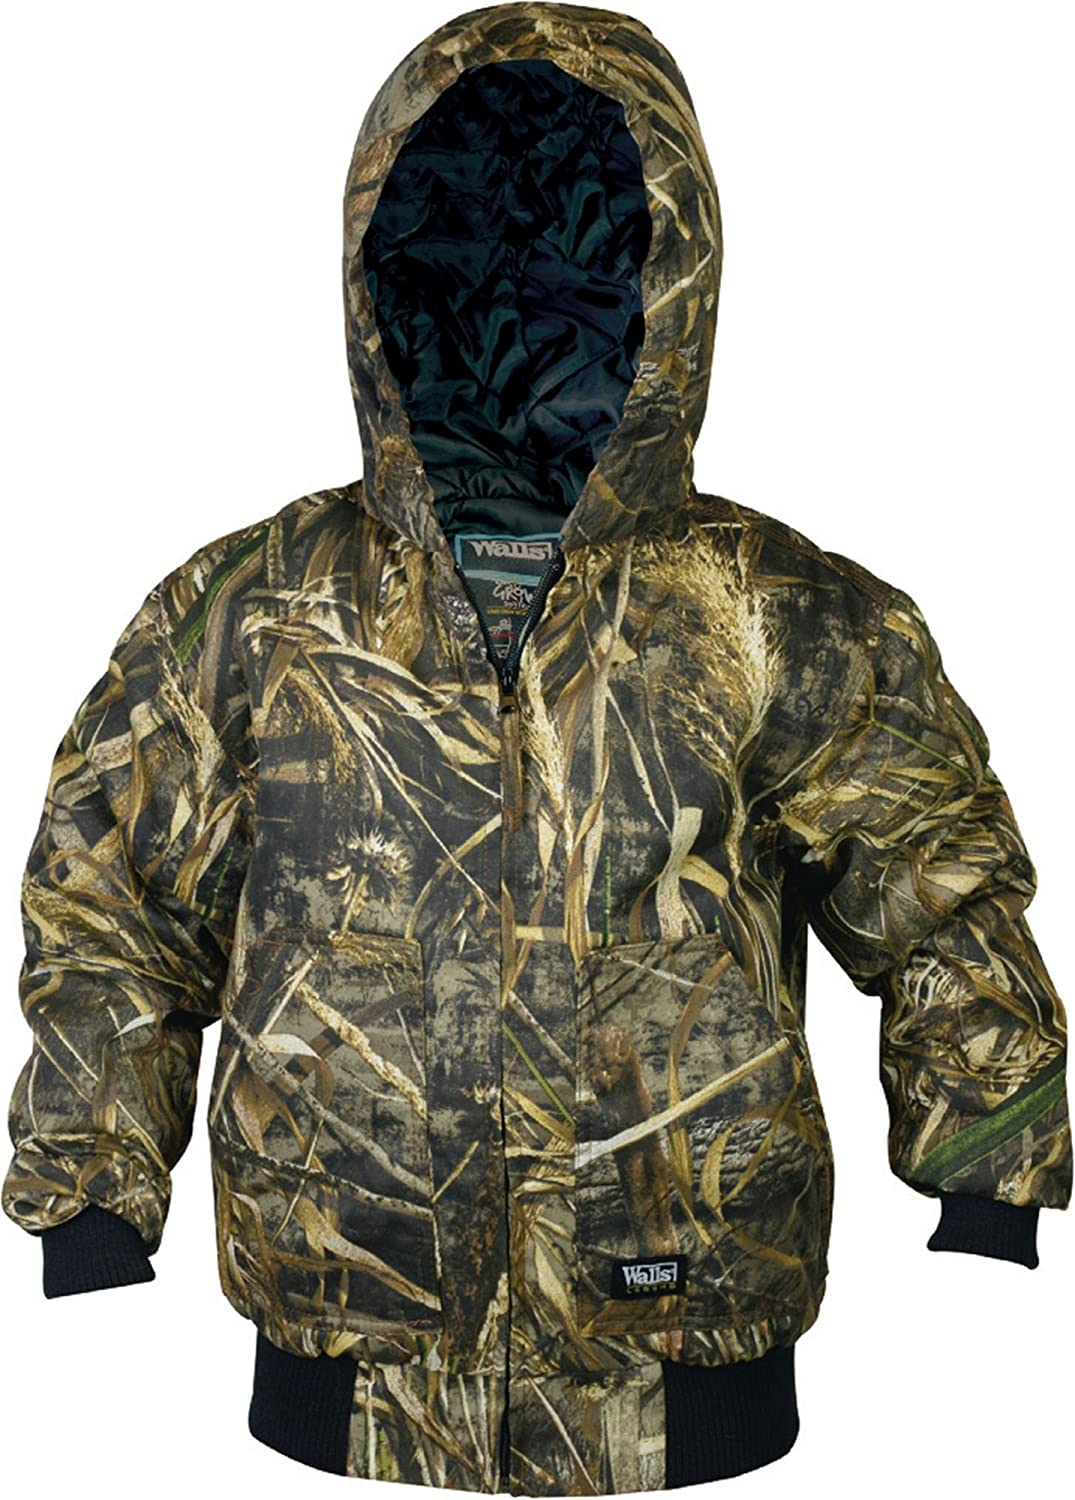 Walls Youth Hooded Jacket Kinsey's Archery 35285AX9-LG